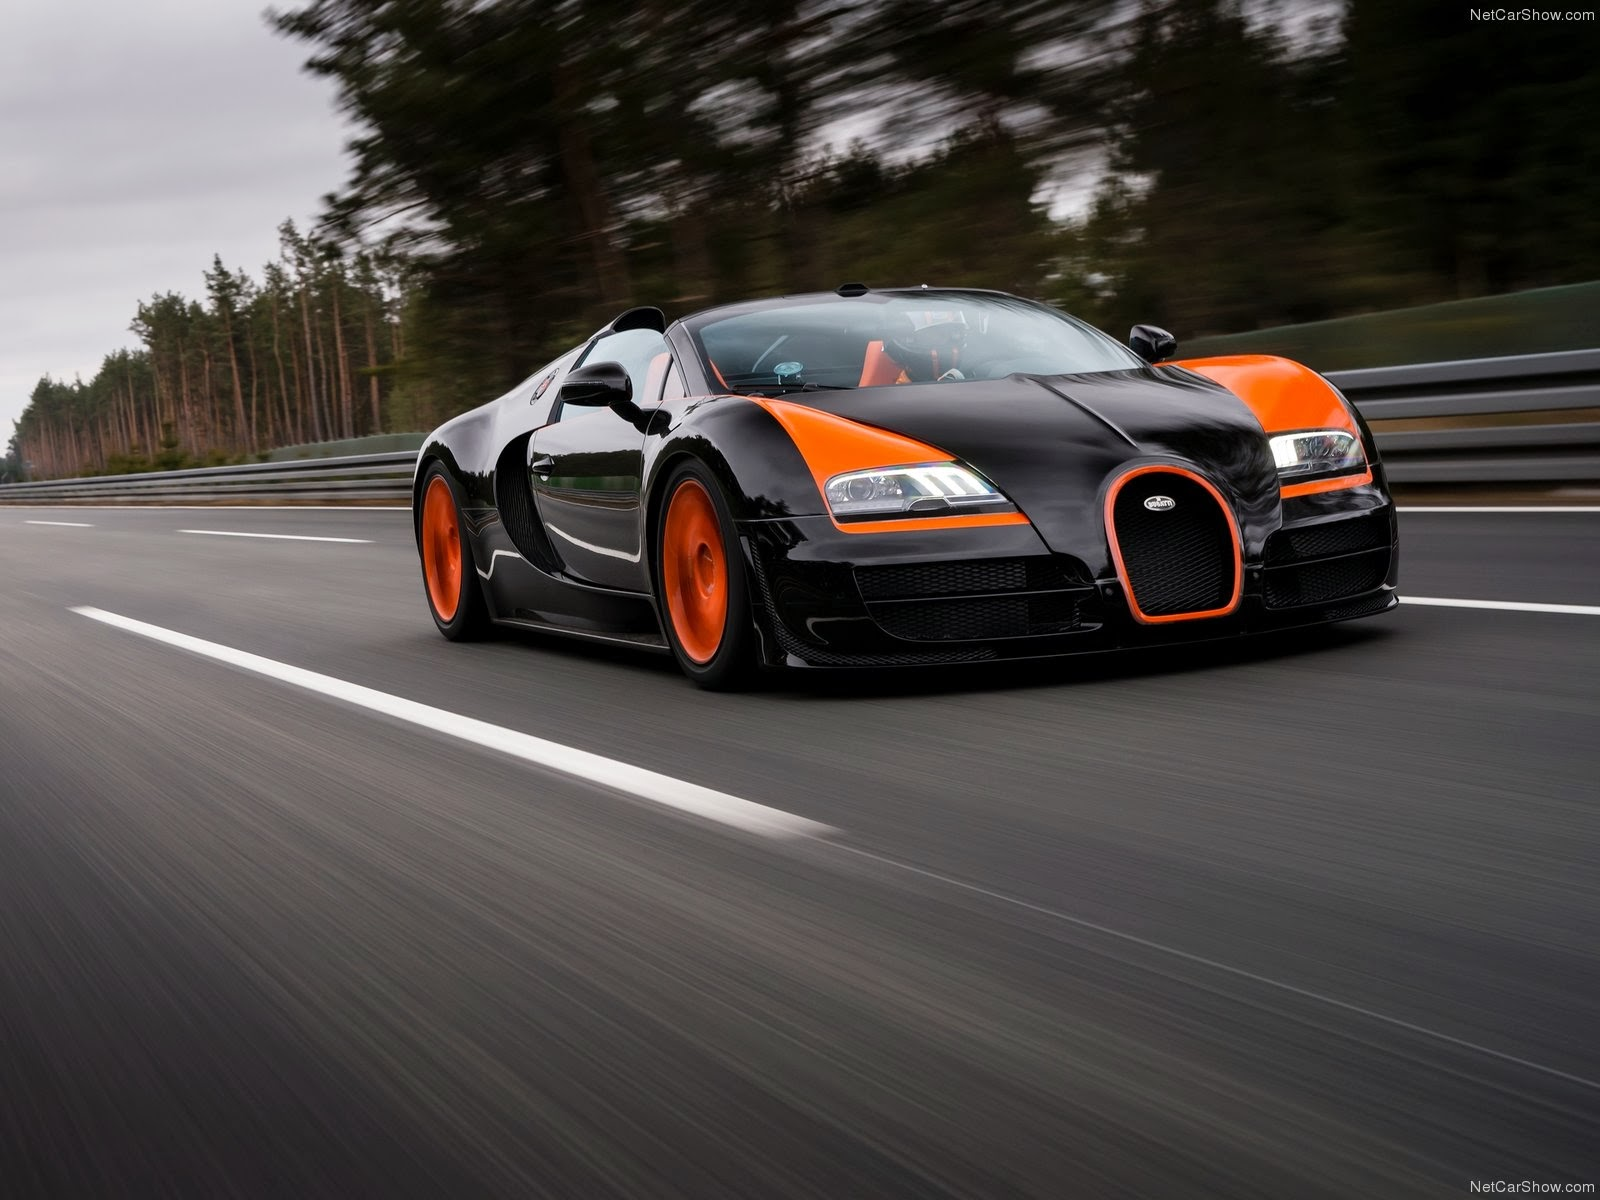 HD Cars Wallpapers: Bugatti Veyron HD Wallpapers